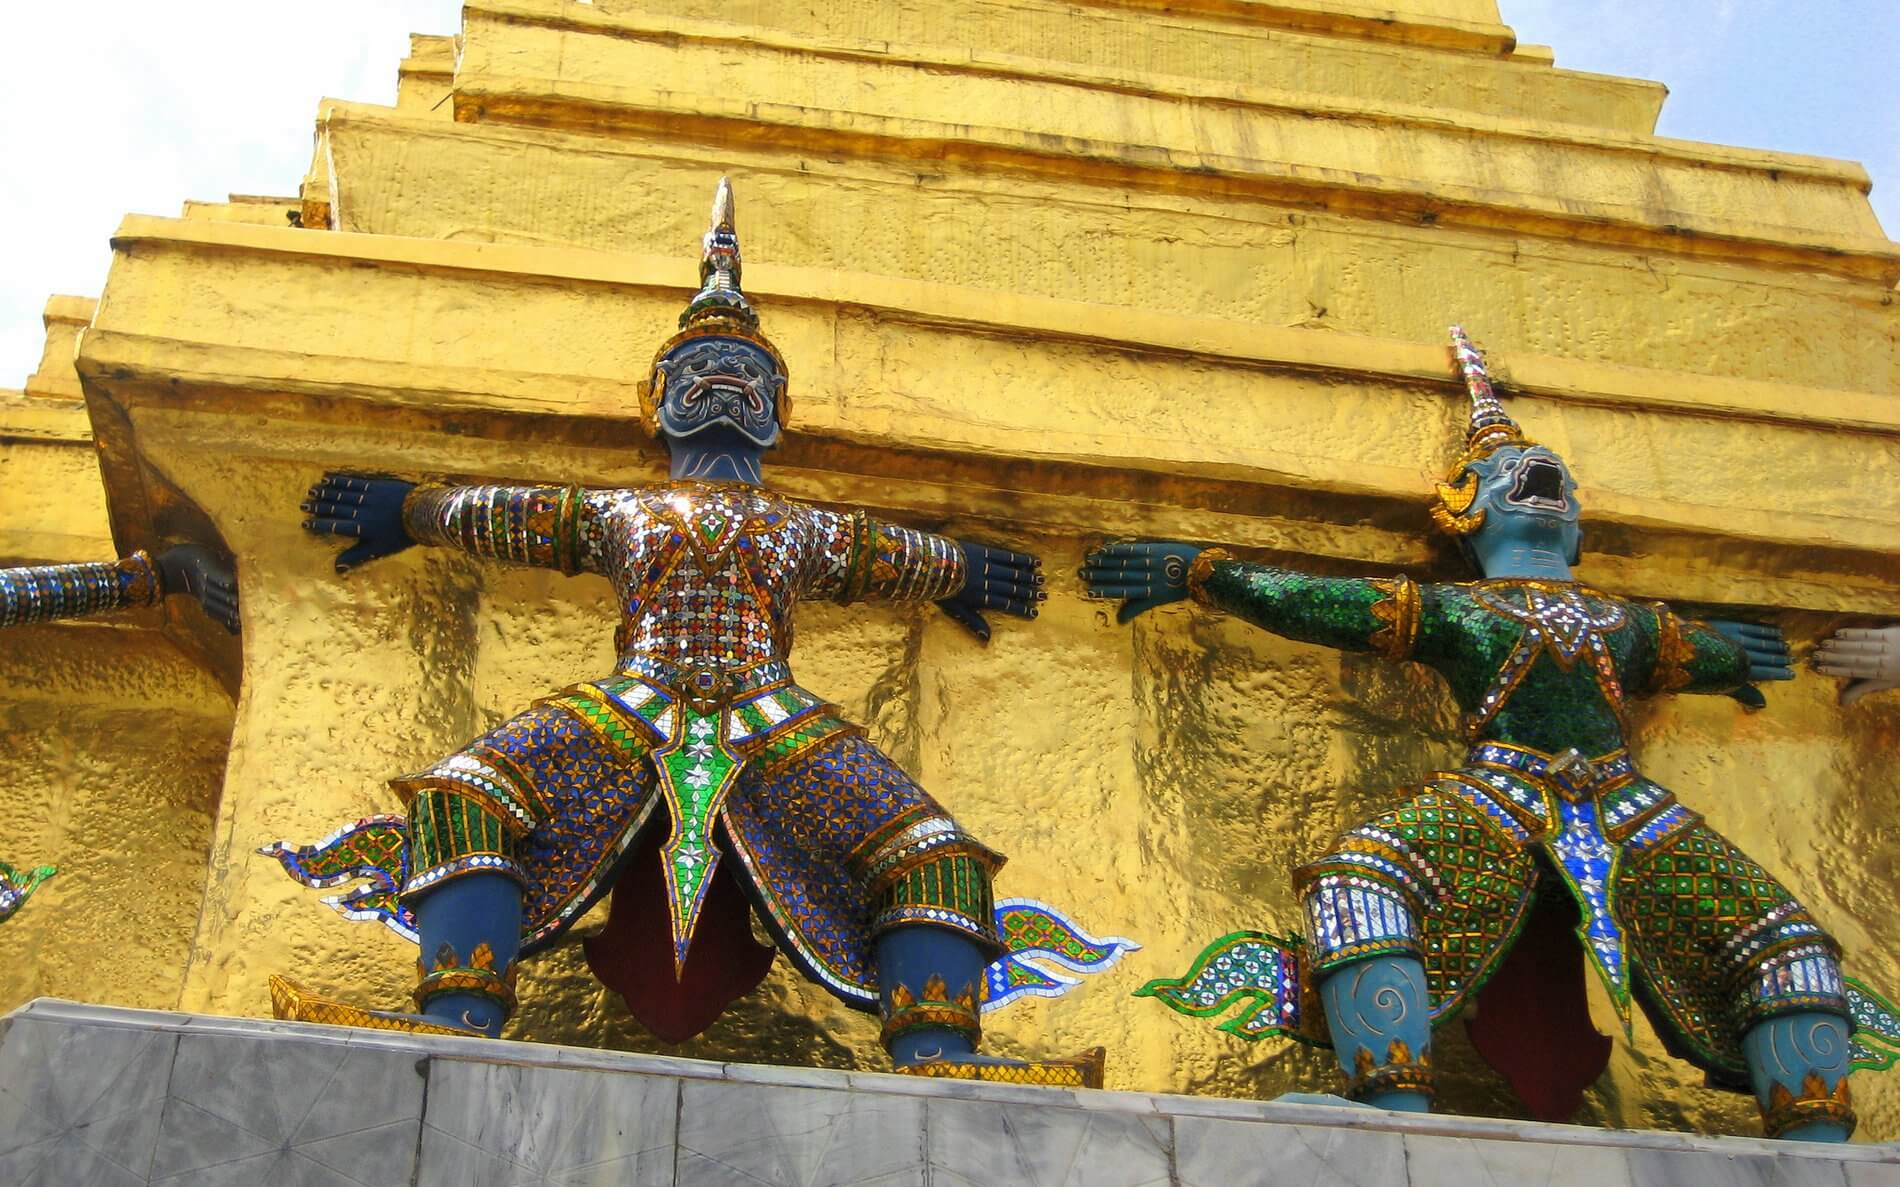 Finishing up in Bangkok – the last of our SE Asia trip